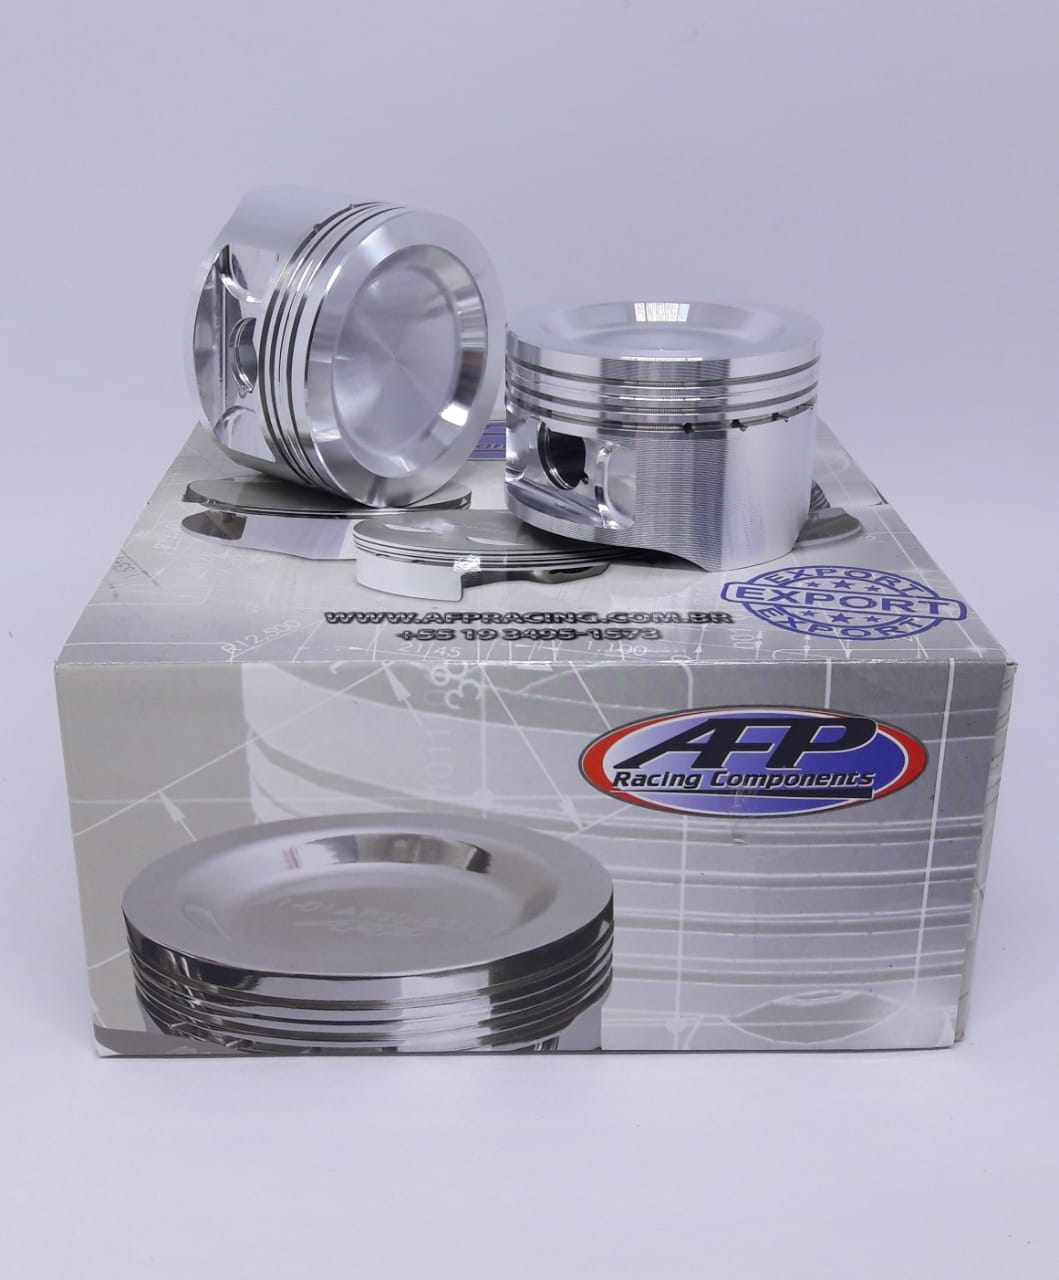 Pistao AFP Forjado VW AP 1.9 8V TURBO 83,00mm PINO 20mm p/ 1200cv